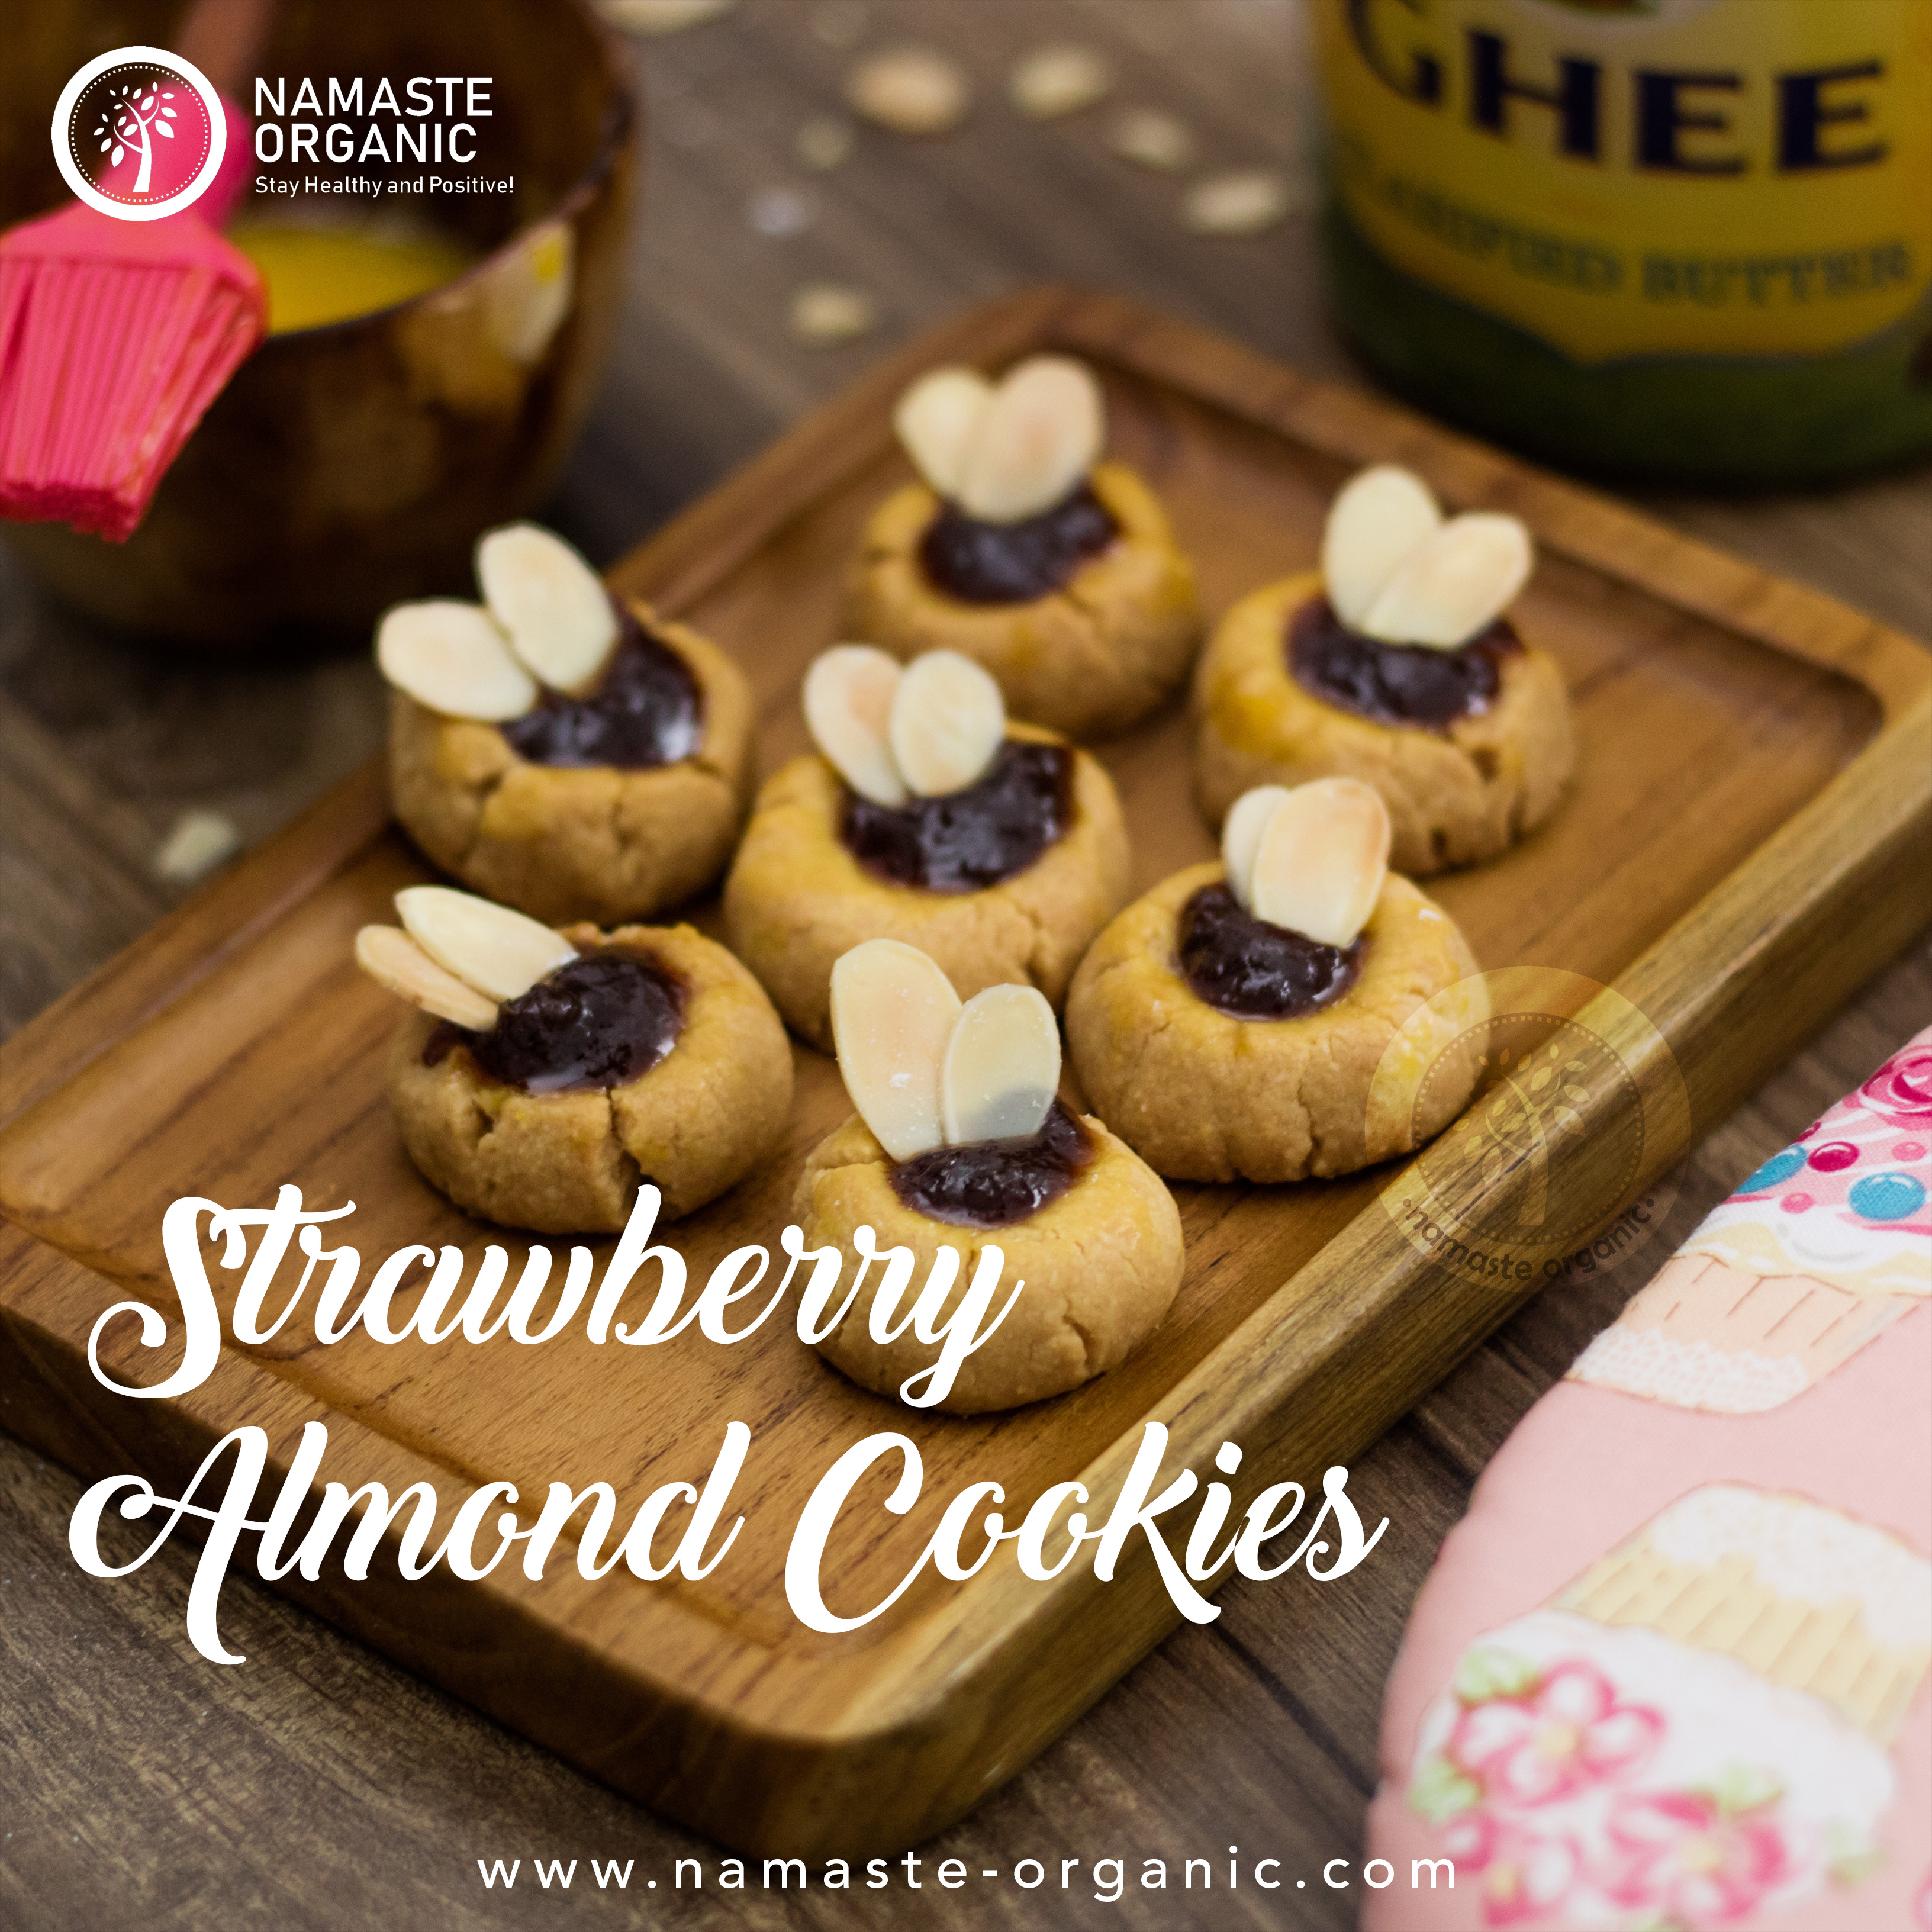 Strawberry Almond Cookies image